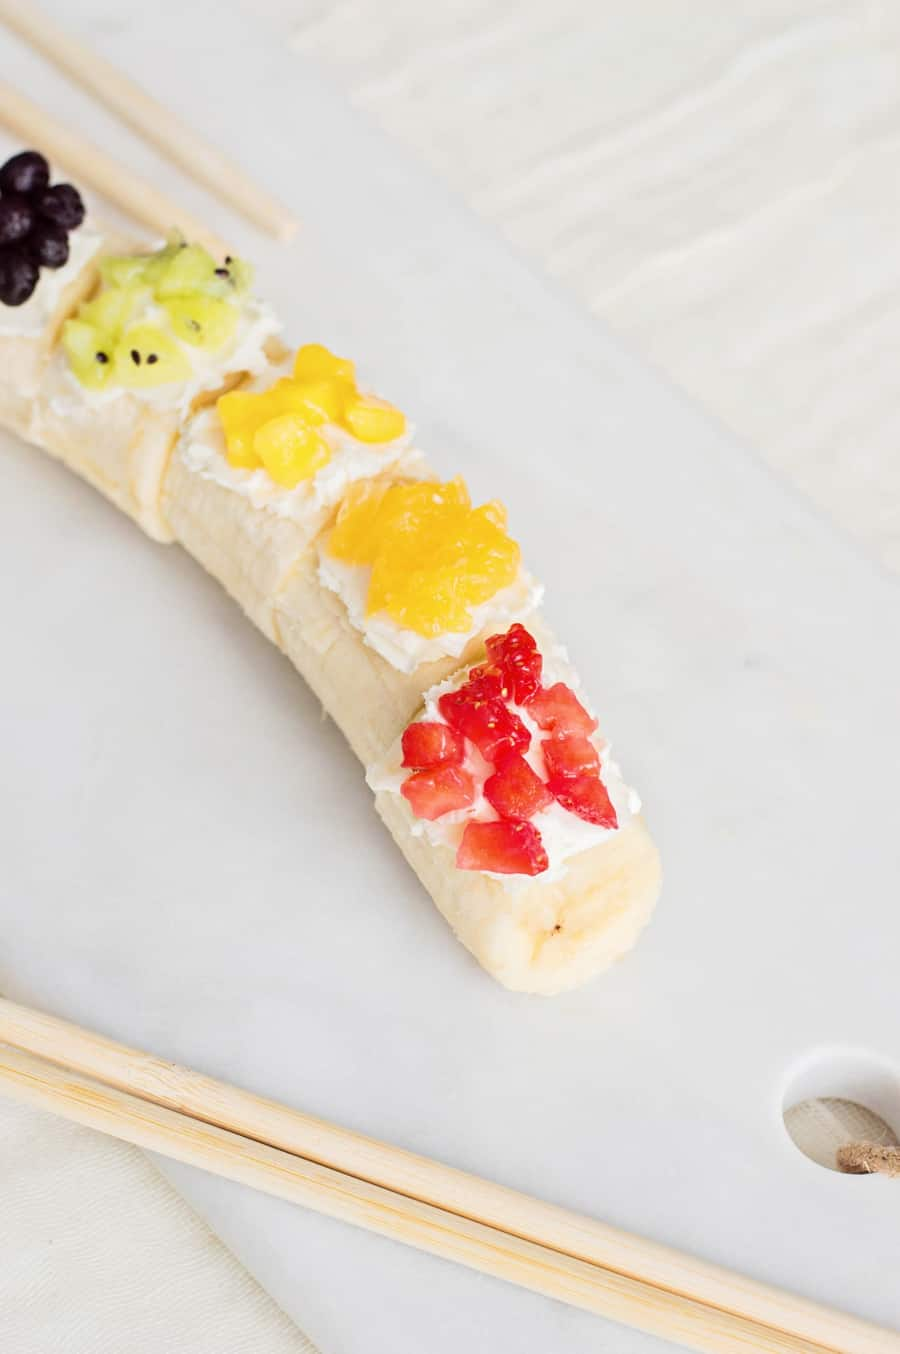 Kids will love getting a healthy, vitamin-packed start to their day with this rainbow fruit banana sushi - a fun snack featuring fresh fruit!